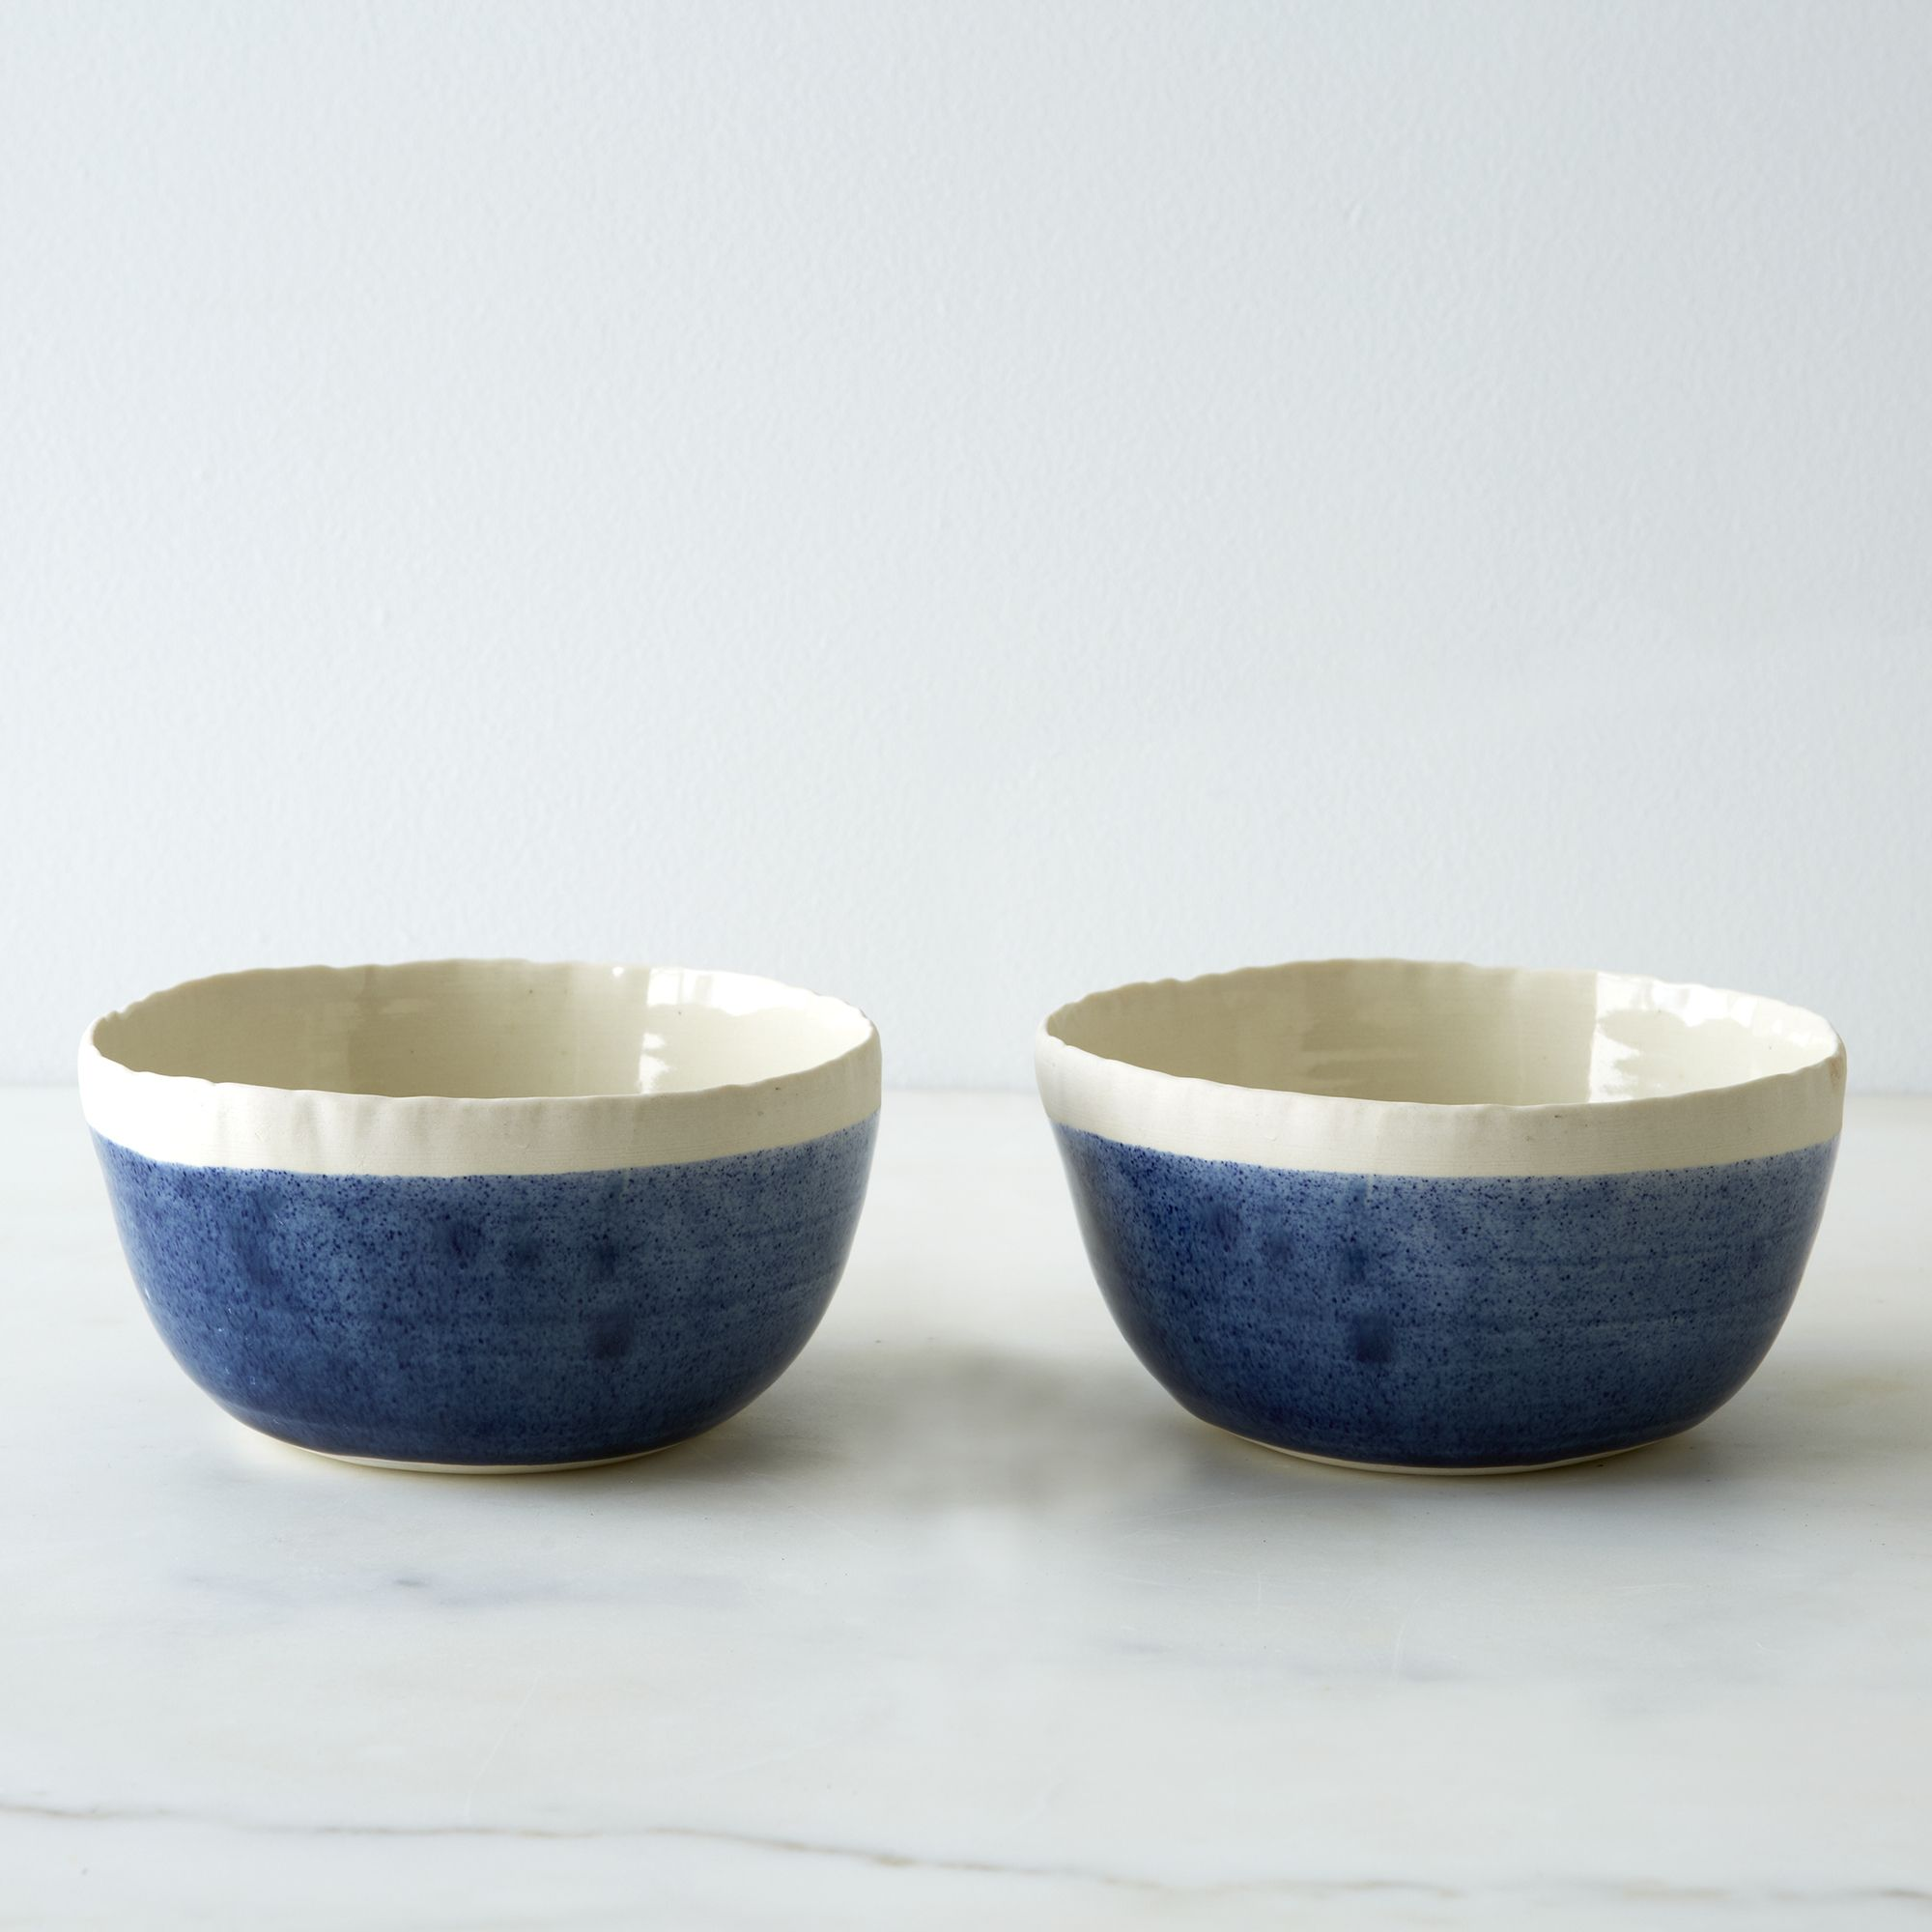 1c47f41e a0f7 11e5 a190 0ef7535729df  2014 1003 fisheye brooklyn blue porcelain soup bowl 030